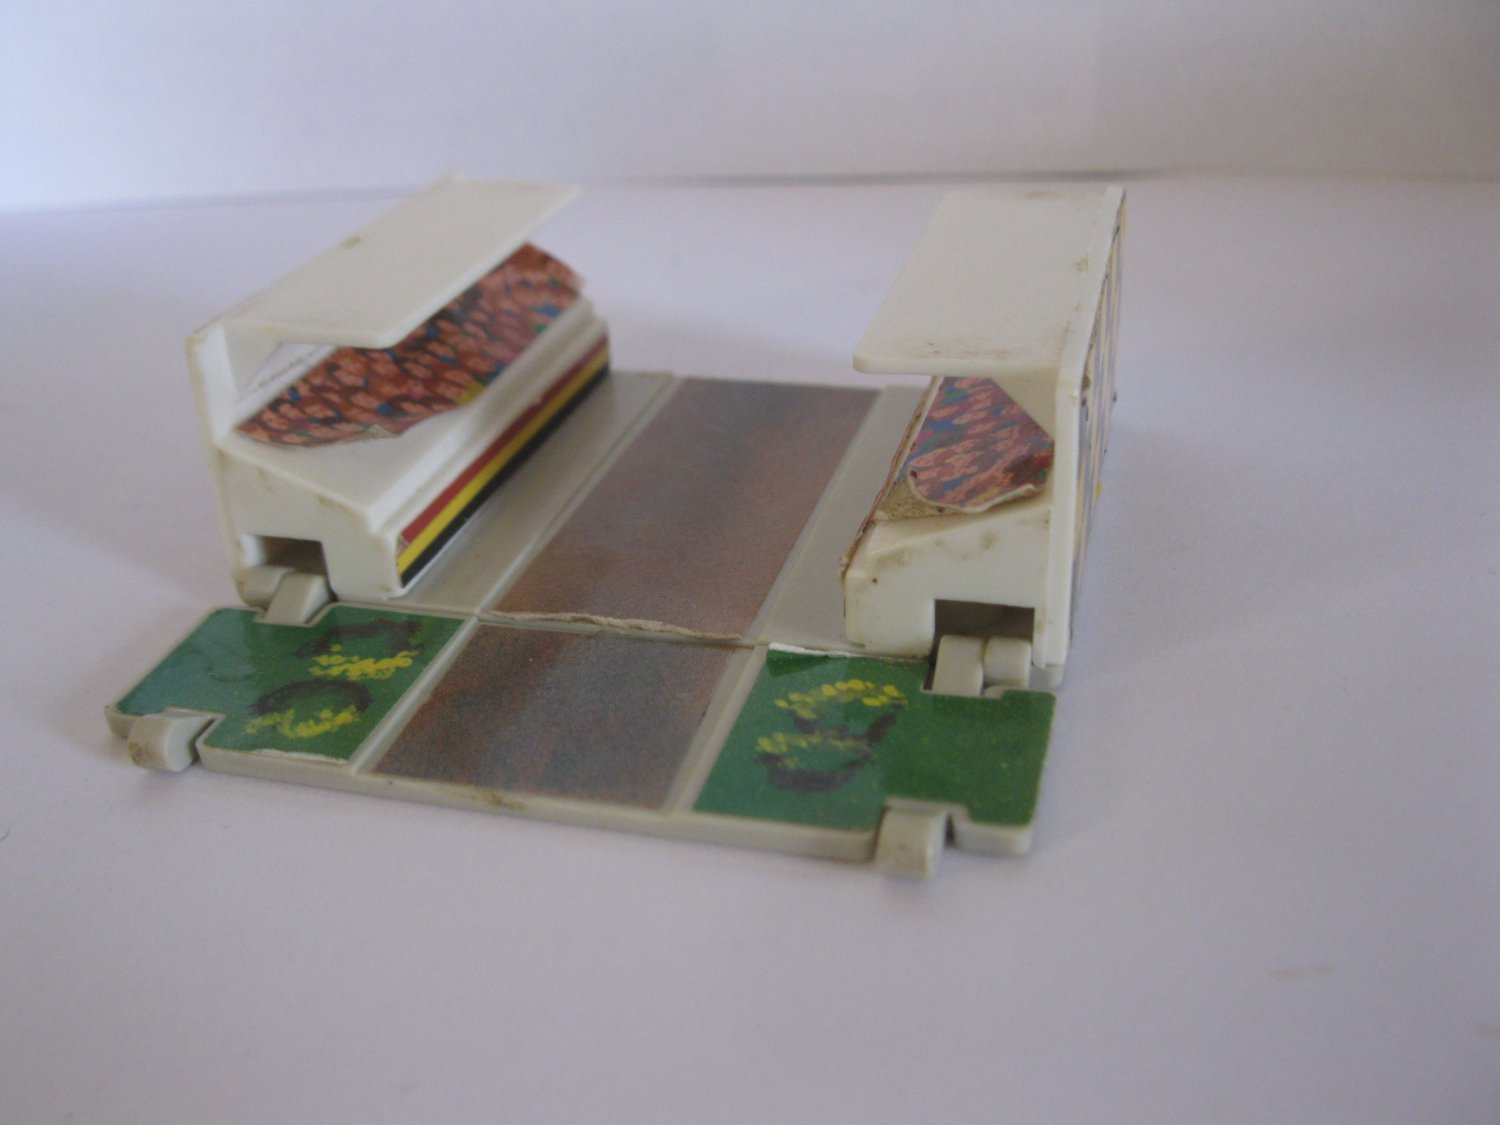 Vintage Micro Machines Playset Piece #2